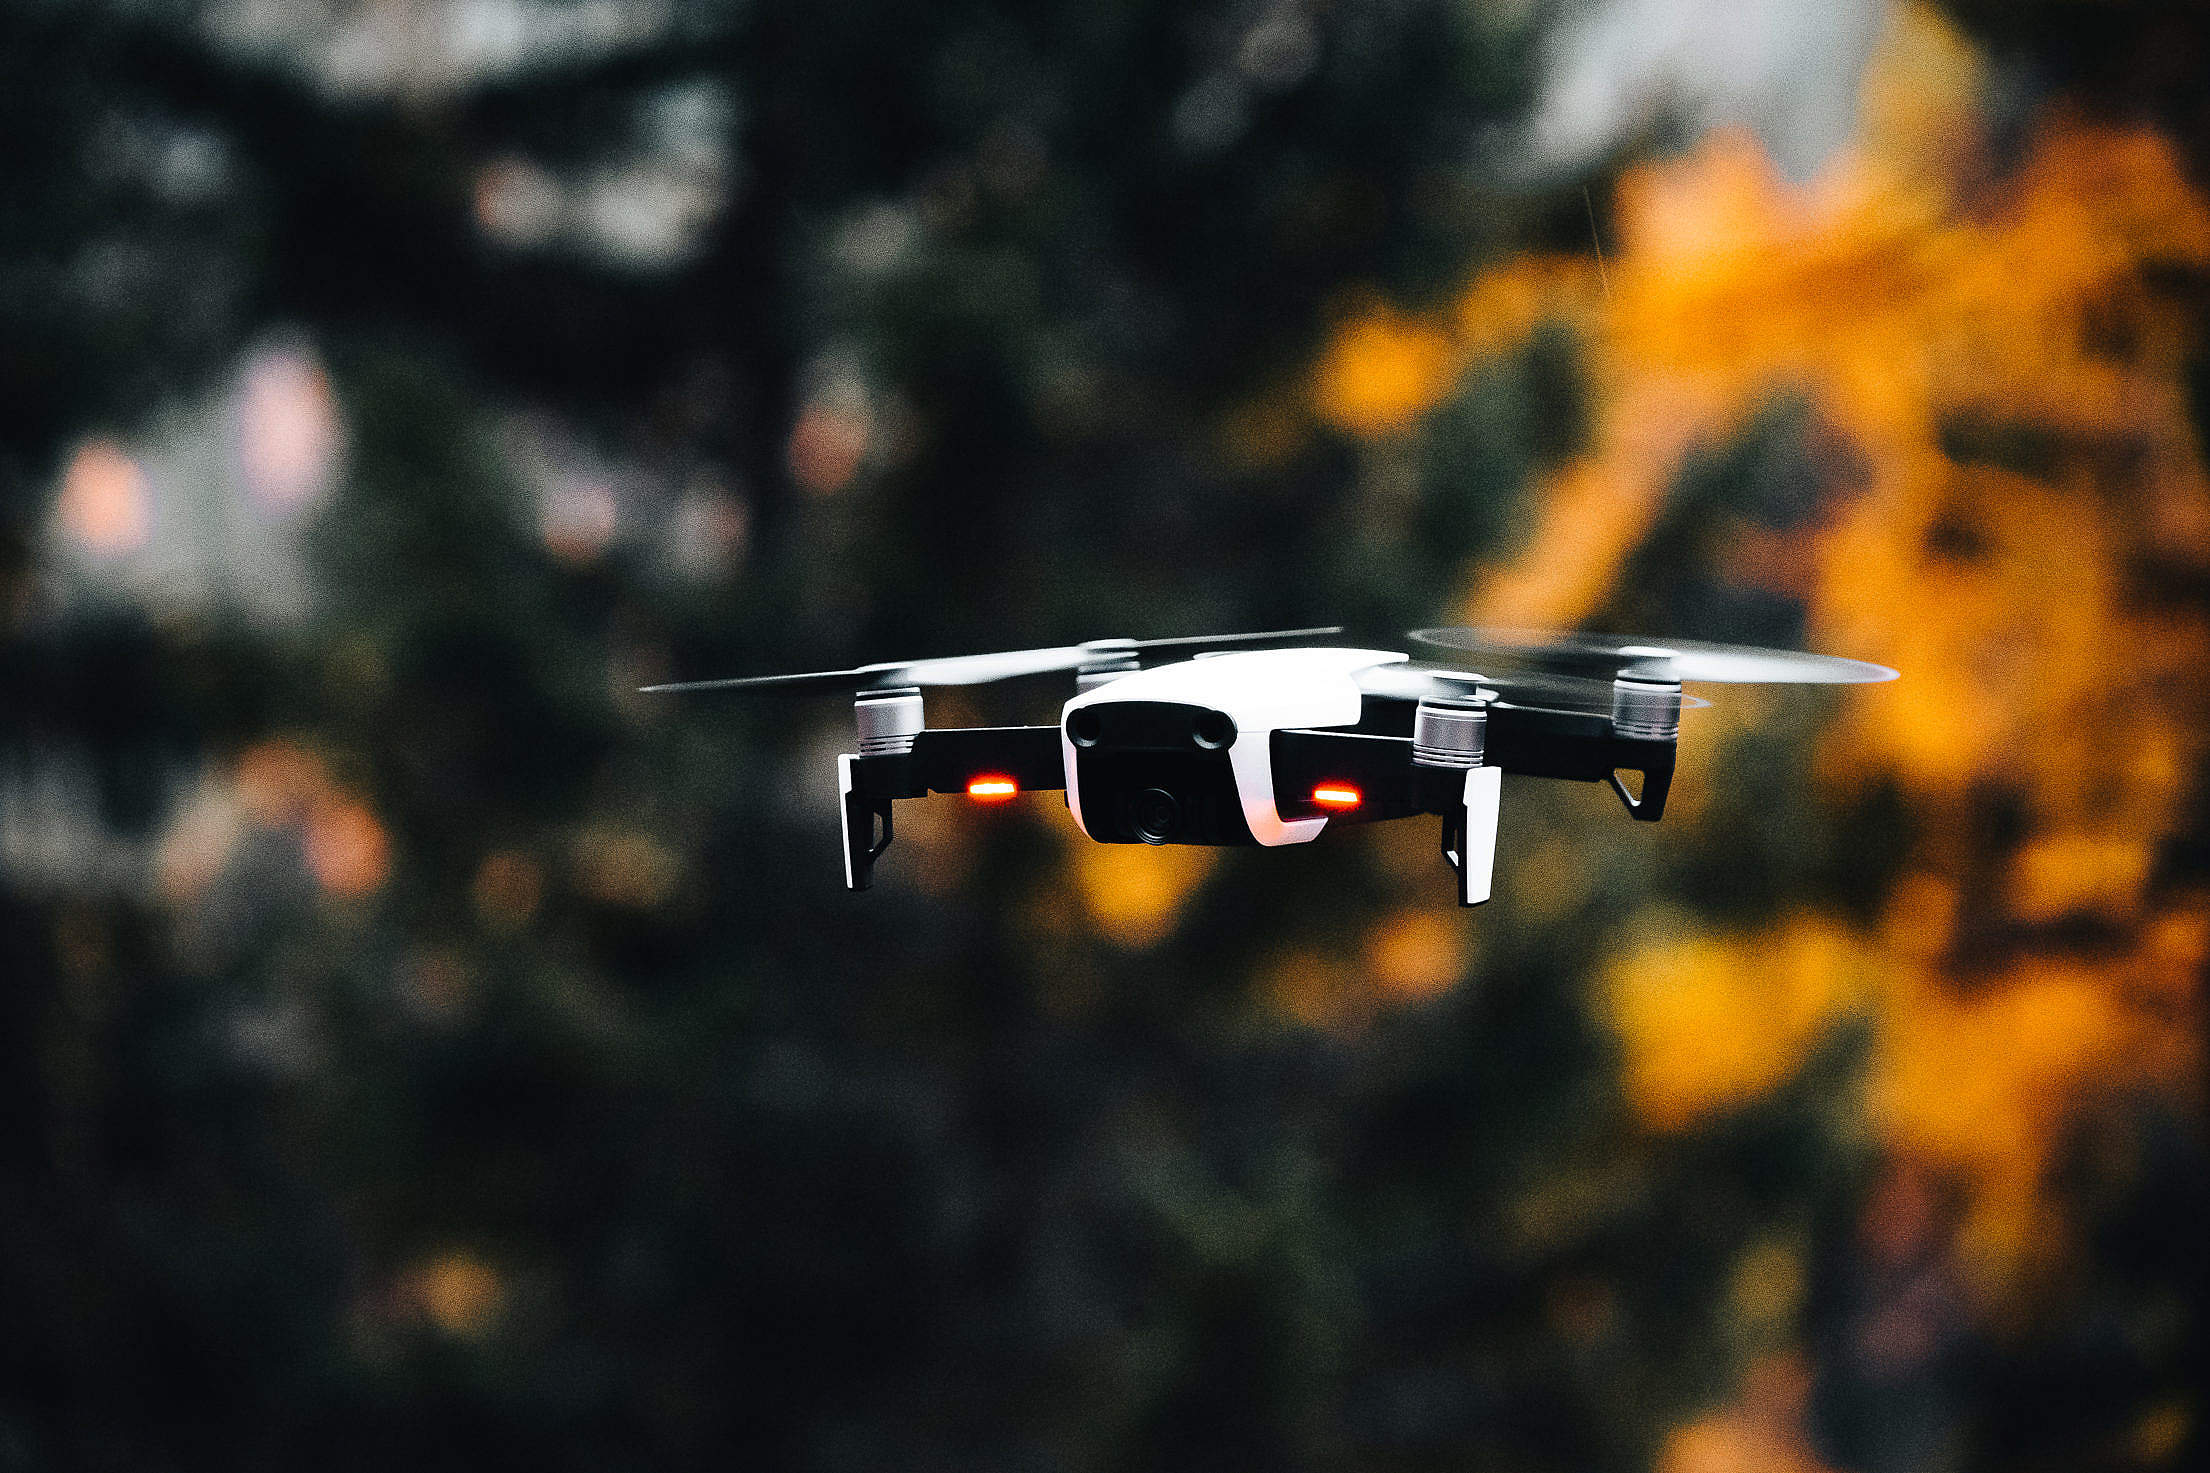 Flying Drone Quadcopter Free Stock Photo